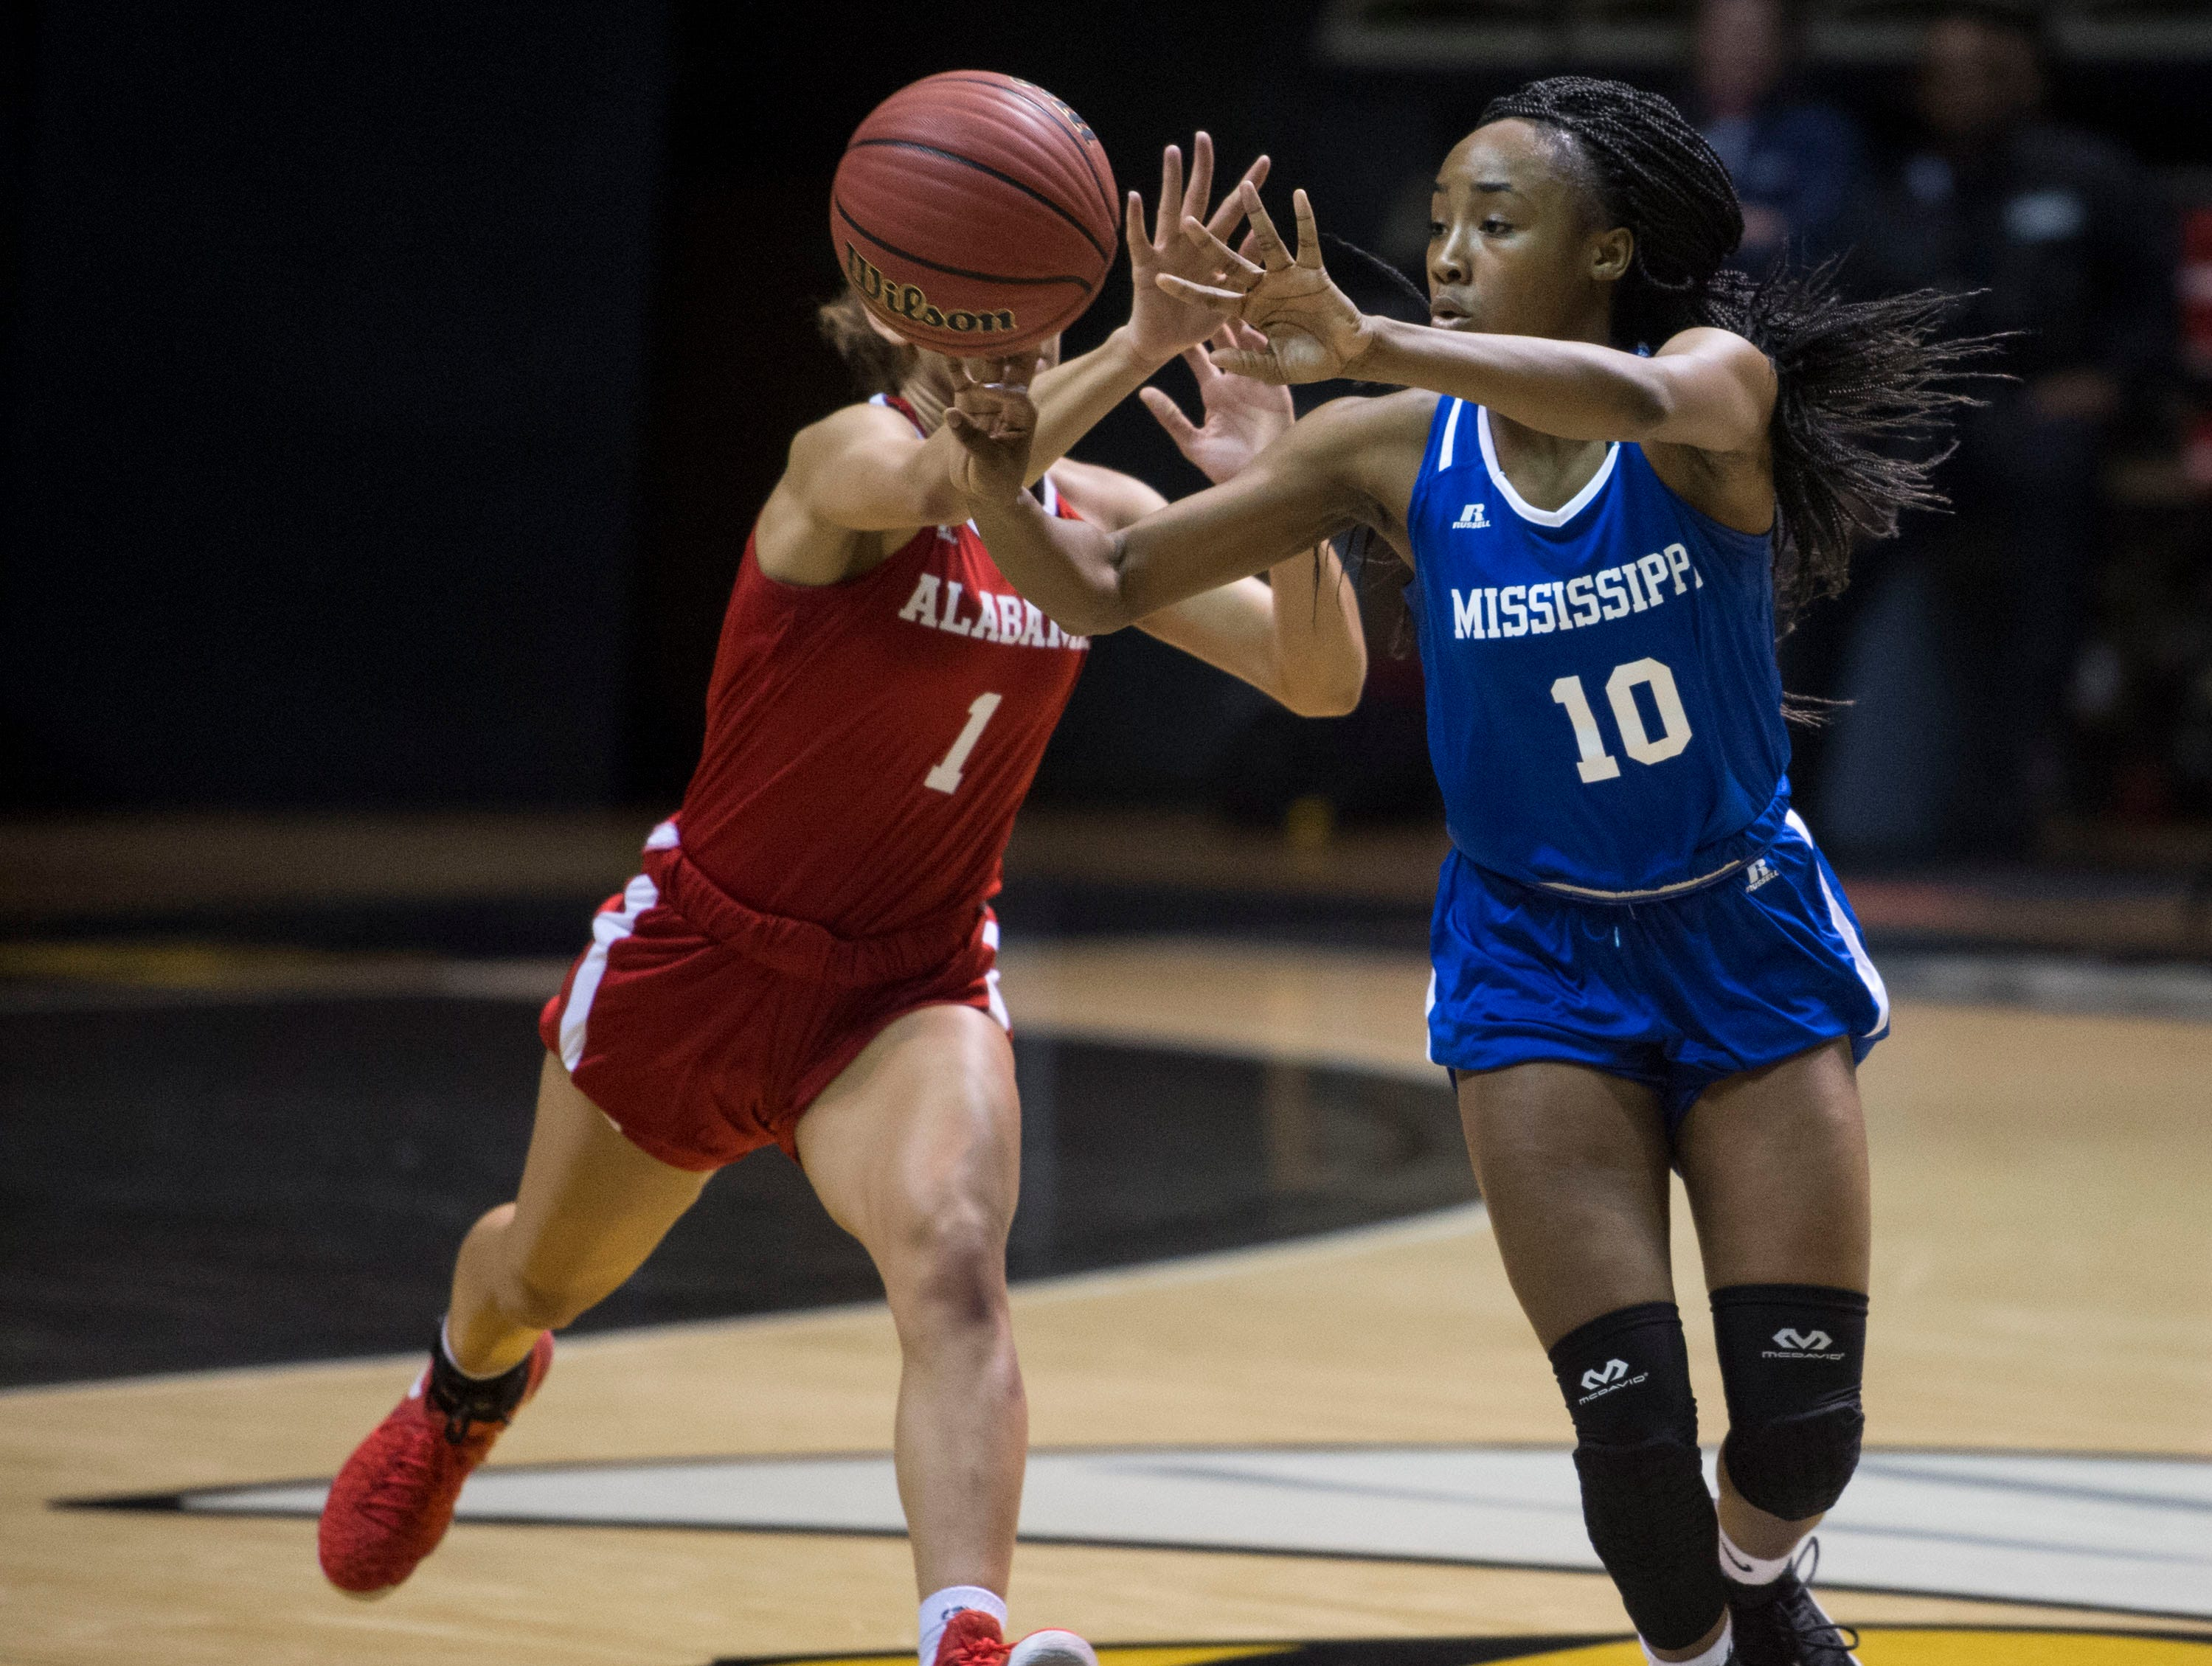 Mississippi's Hannah White (10) passes the ball before Alabama's Skyla Knight (1) steals it during the Alabama-Mississippi All-Star game at the Dunn-Oliver Acadome in Montgomery, Ala., on Friday, March 15, 2019. Alabama All-stars defeated the Mississippi All-stars 101-82.